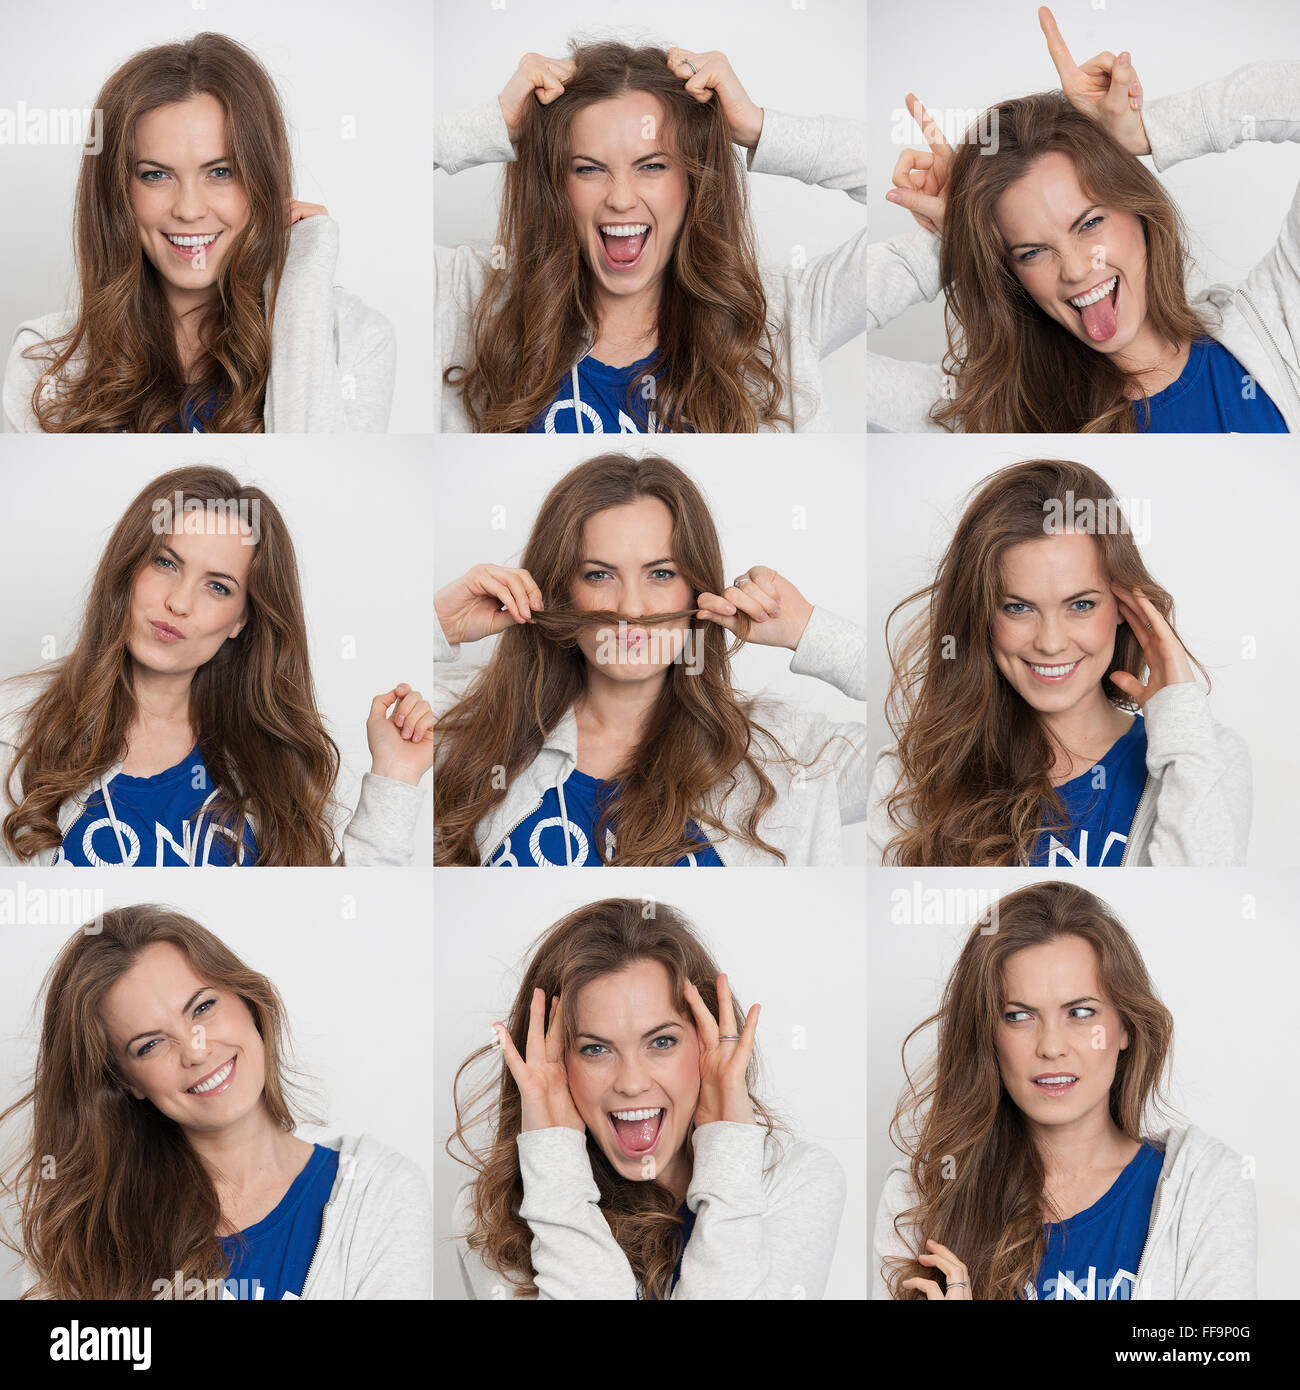 photos of a woman showing various emotions and expressions - Stock Image